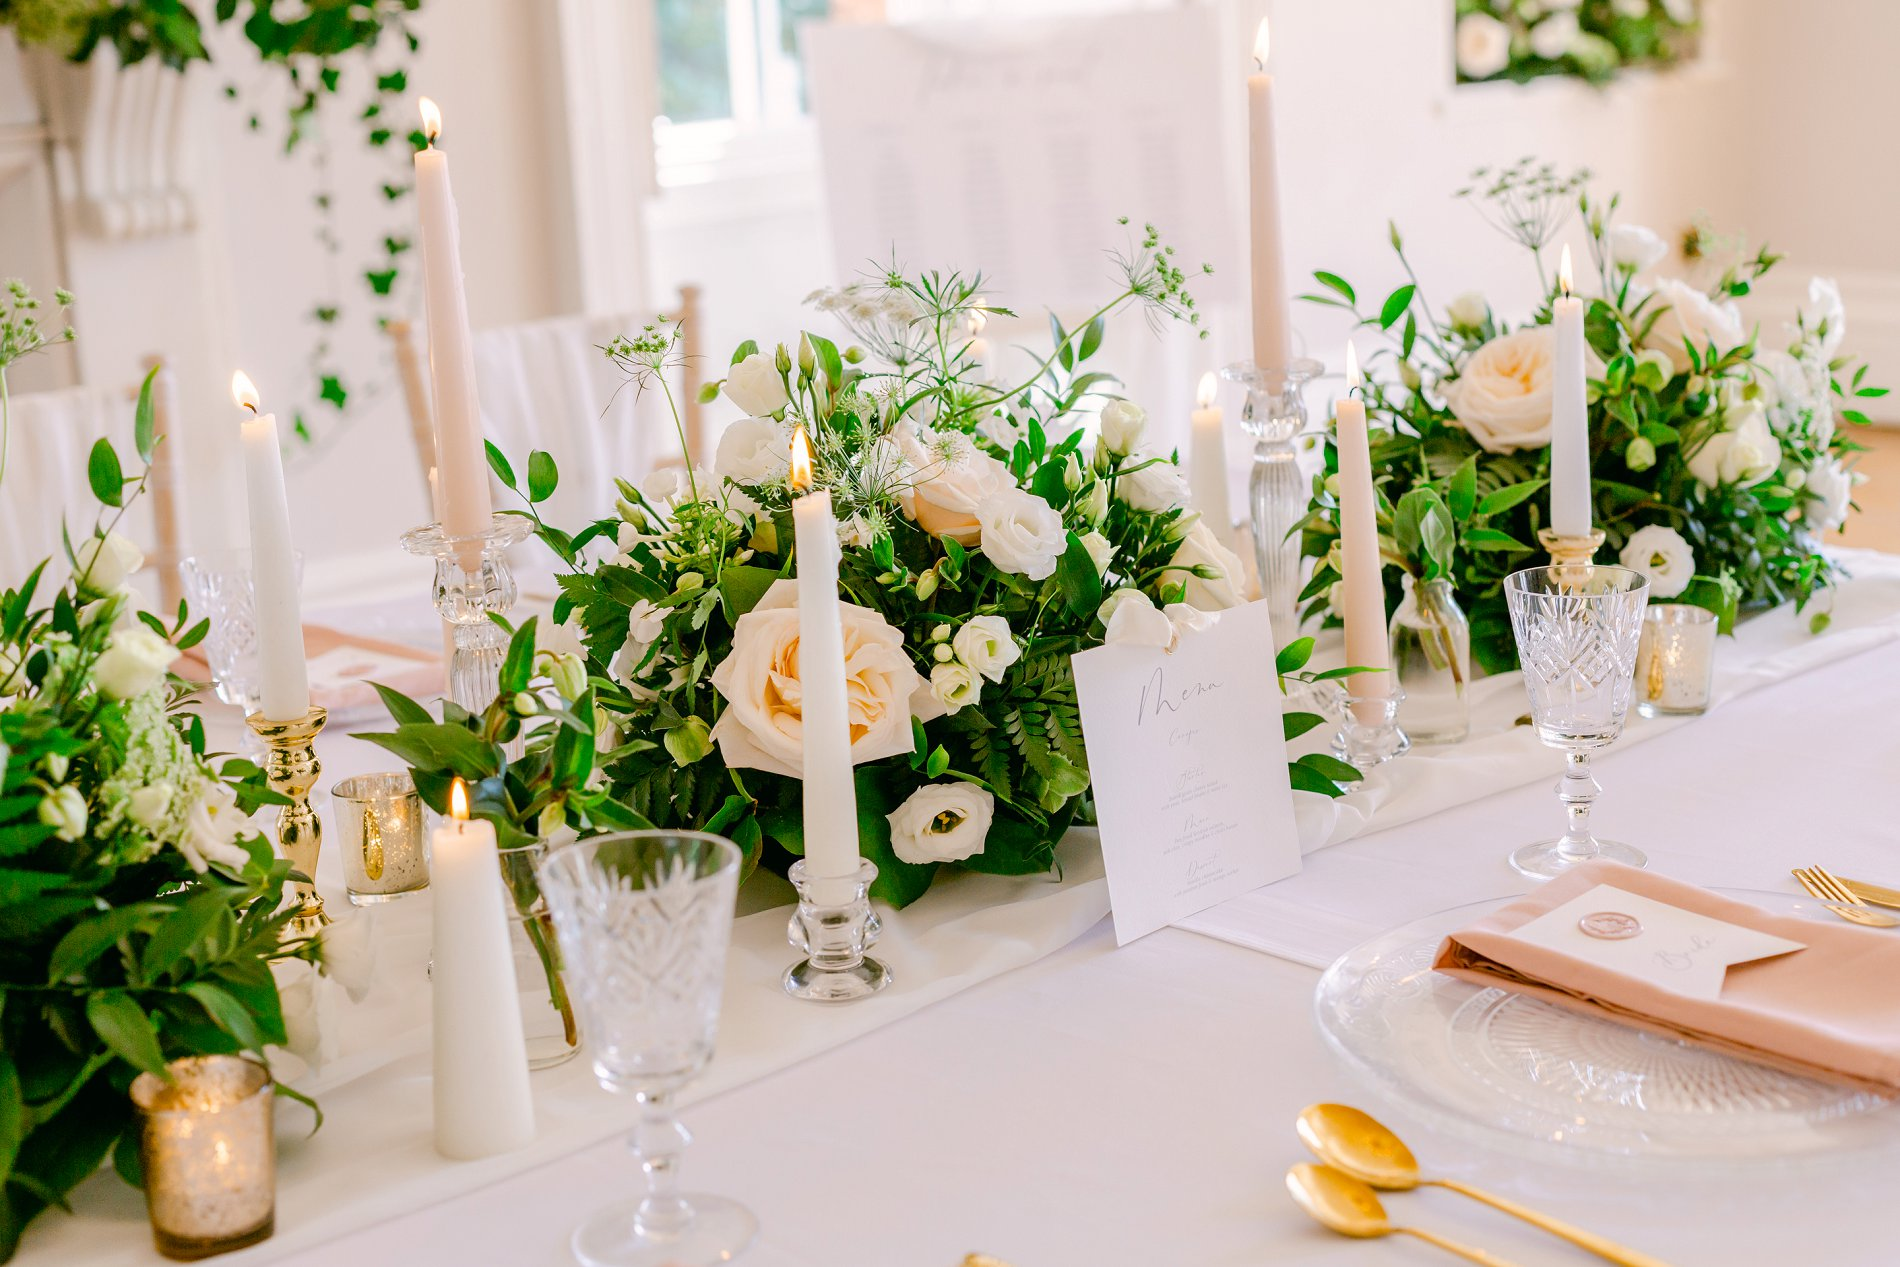 An Elegant UNVEILED Network wedding shoot at Hirst Priory (c) Ailsa Reeve Photography (21)